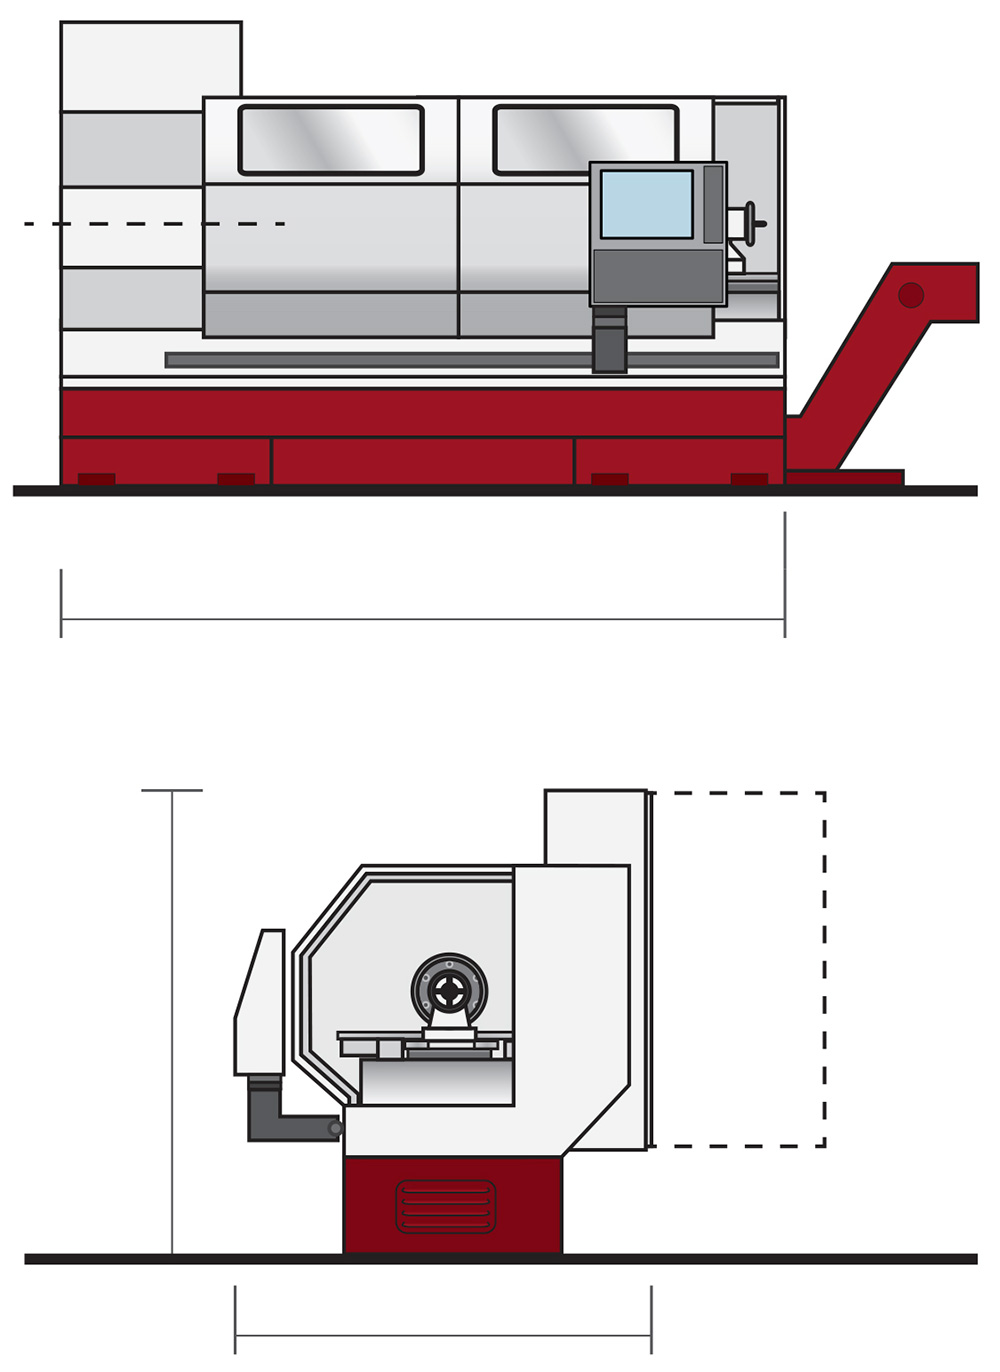 Horizontal bed turning machines with up-to-the-minute CNC conversational mode ET-21